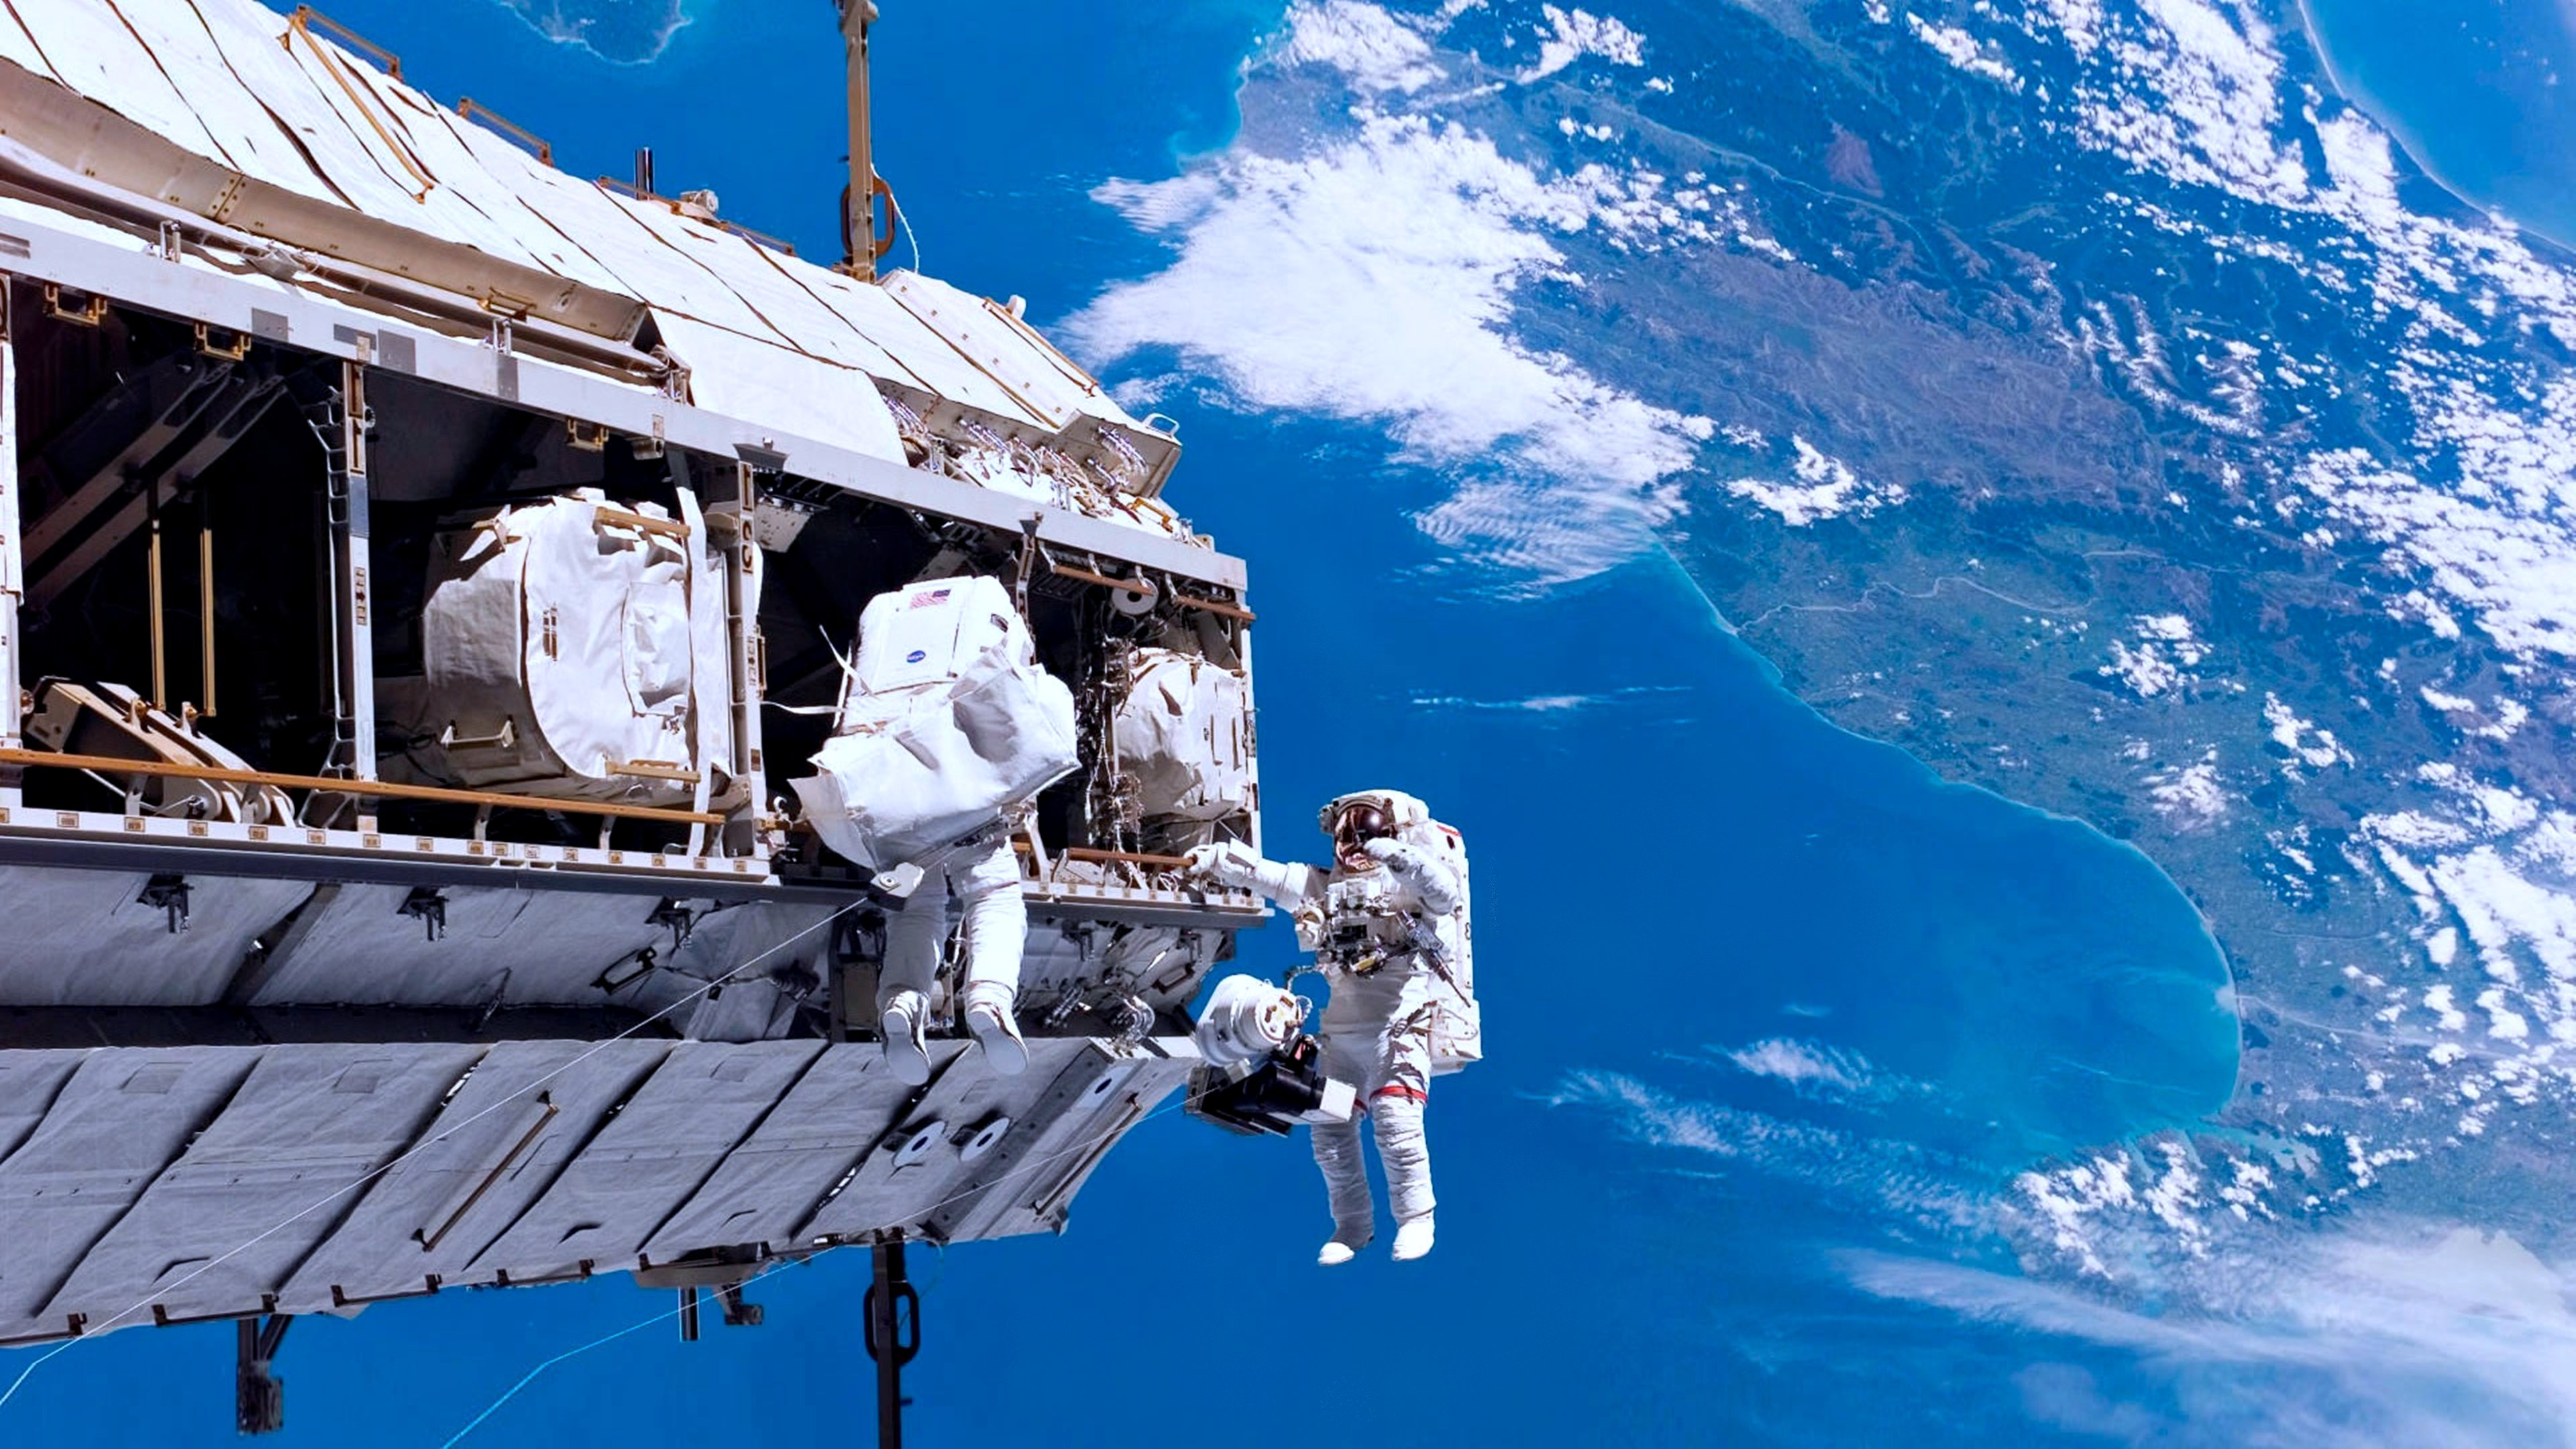 an astronaut in the spaceship sees the sky as - photo #49